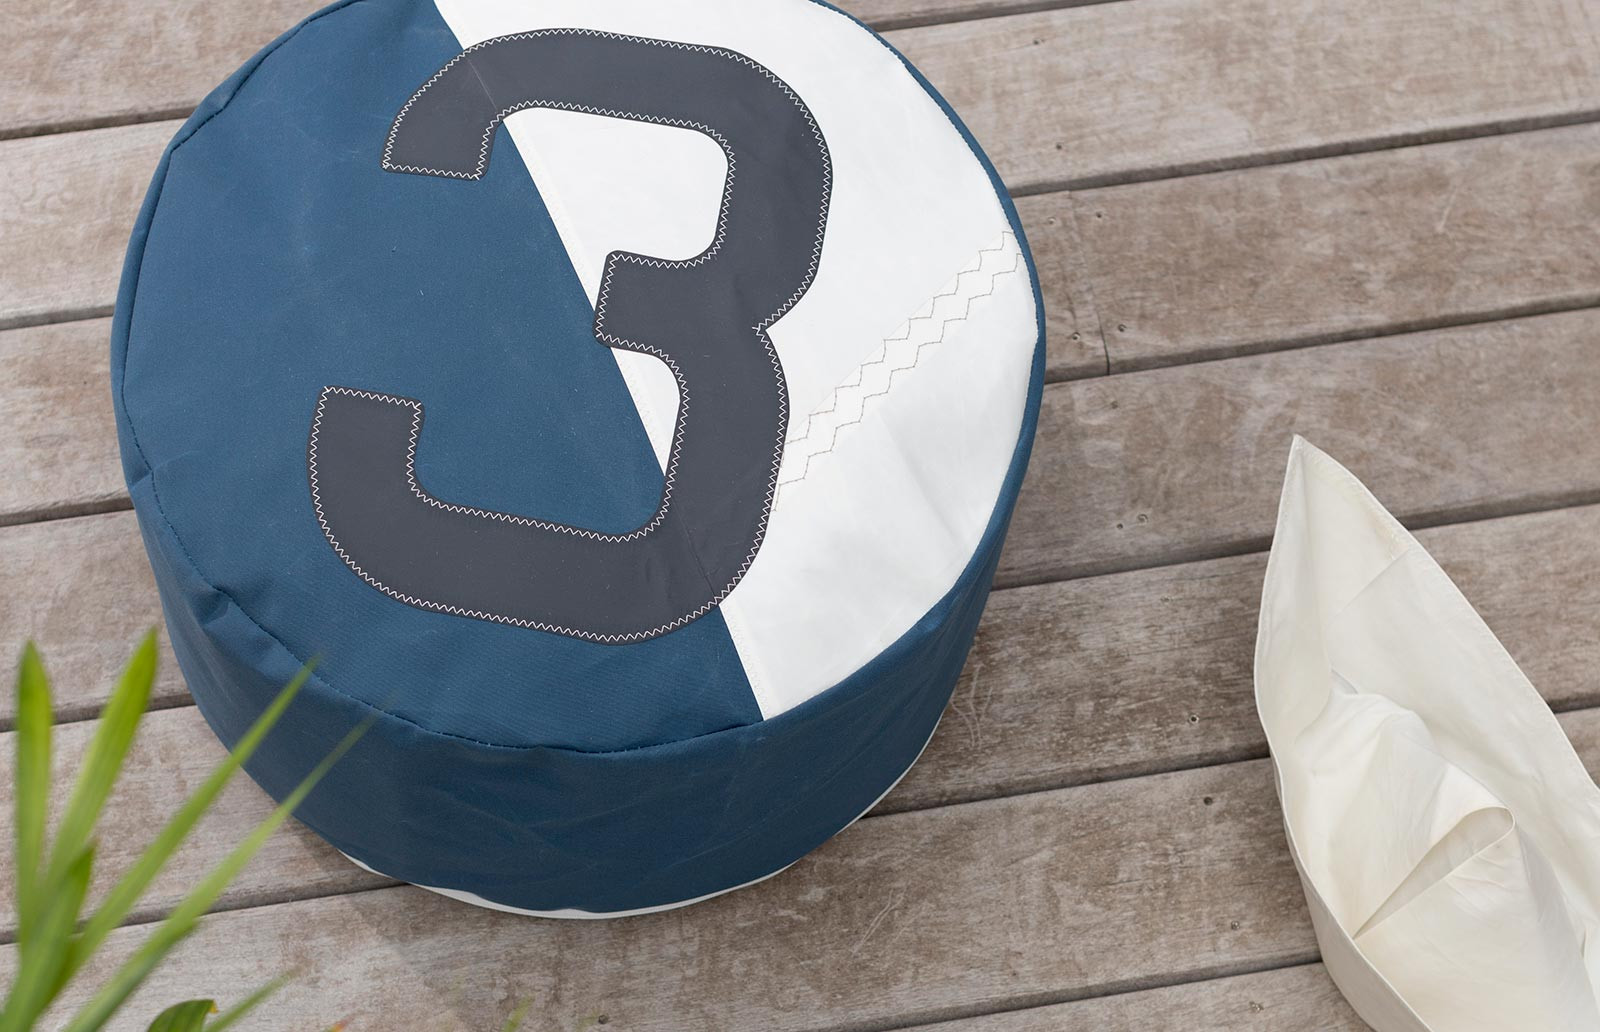 727Sailbags pouffes in recycled sailcloth.